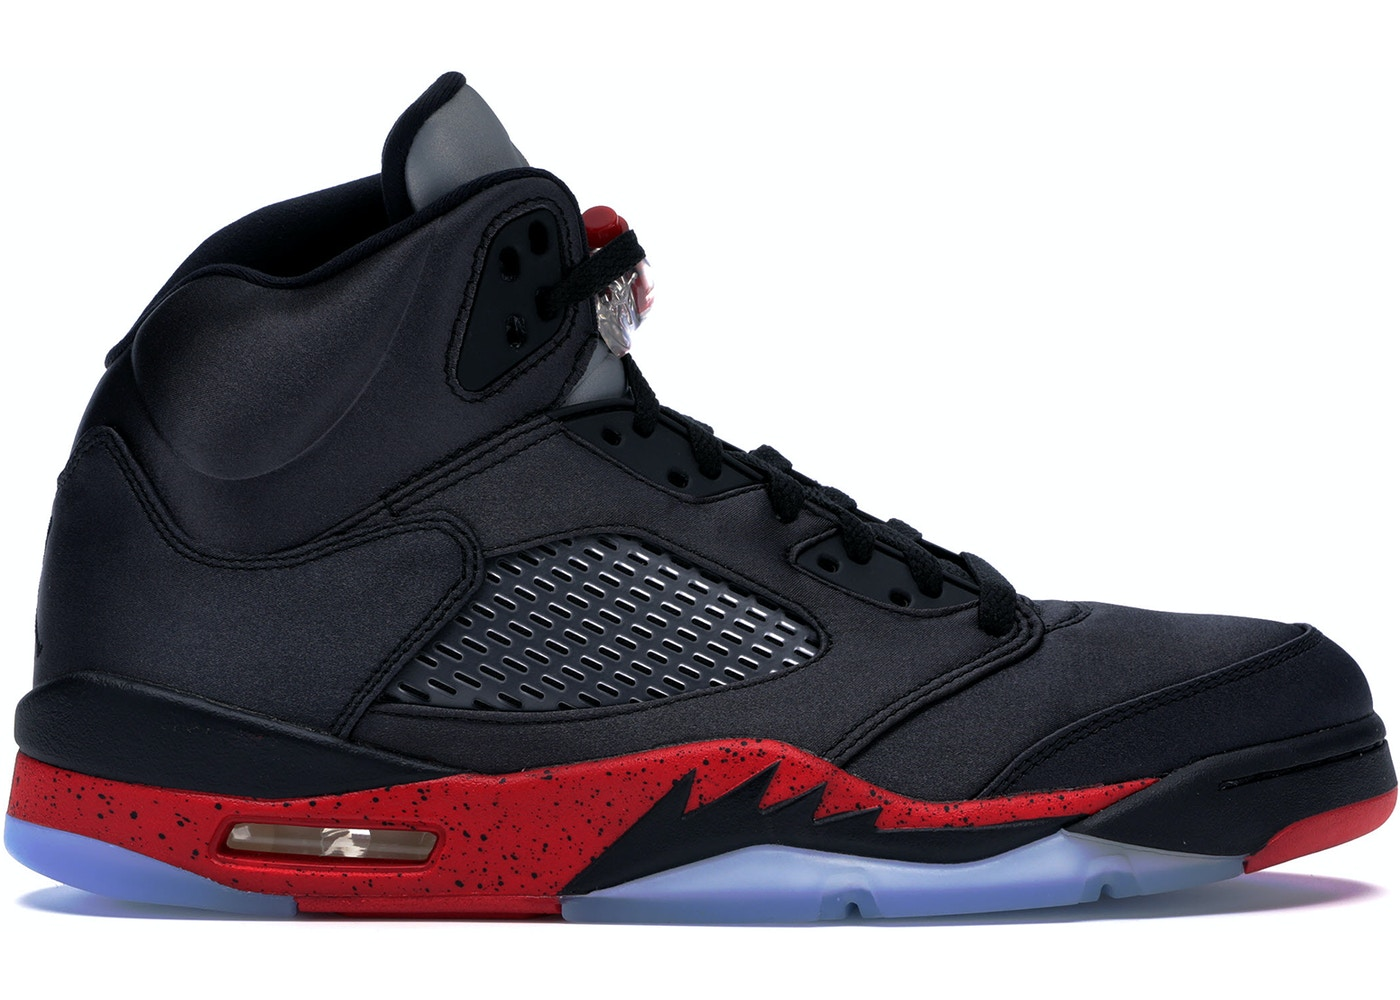 competitive price cdb66 7e19c Buy Air Jordan 5 Size 10 Shoes   Deadstock Sneakers